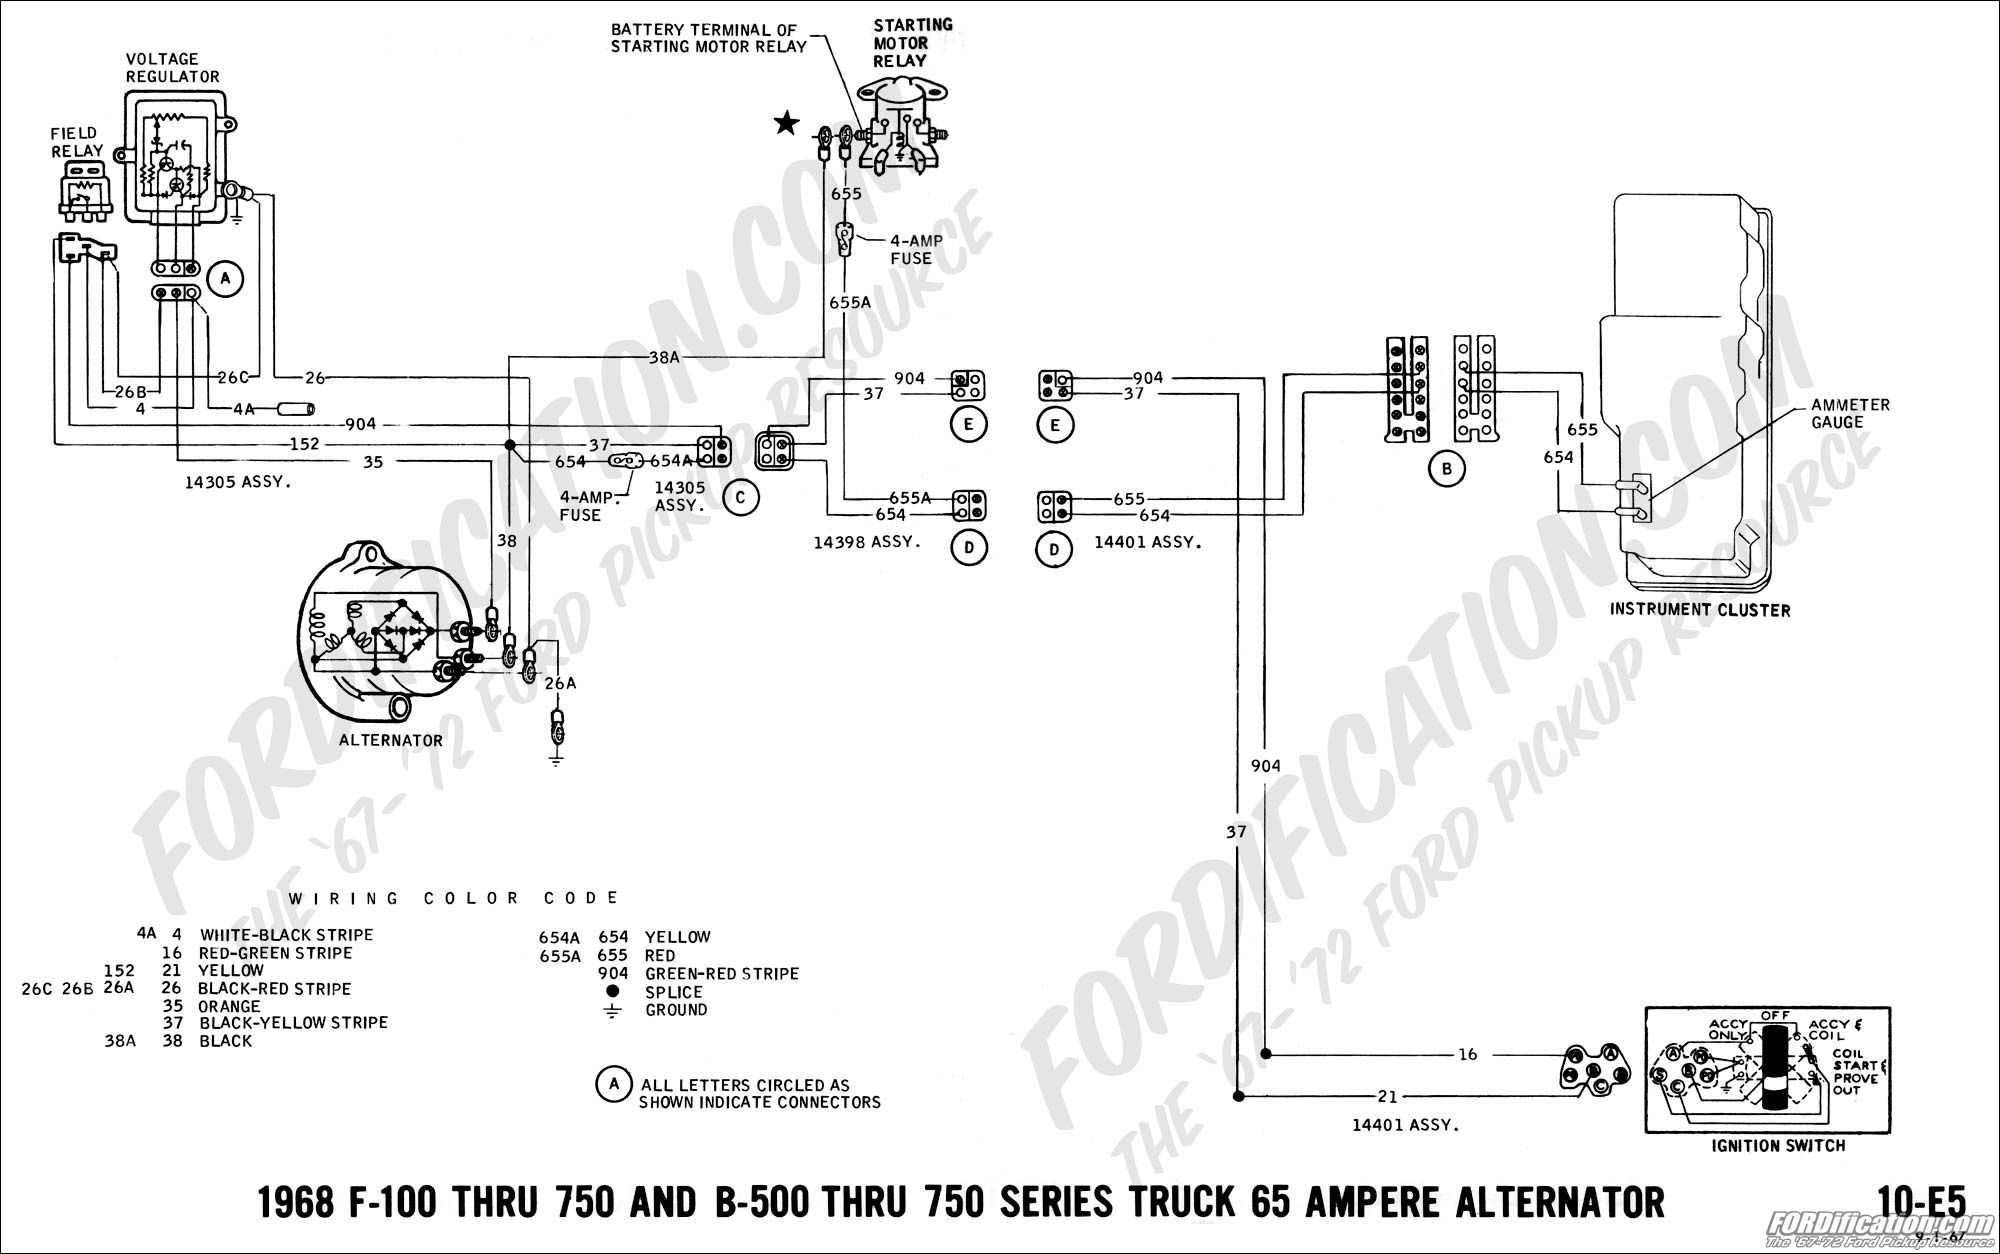 68 Ford Alternator Wiring Diagram 76 Ford F150 Pinterest Ford Ford Voltage  Regulator Wiring 1971 Ford Alternator Wiring Diagram